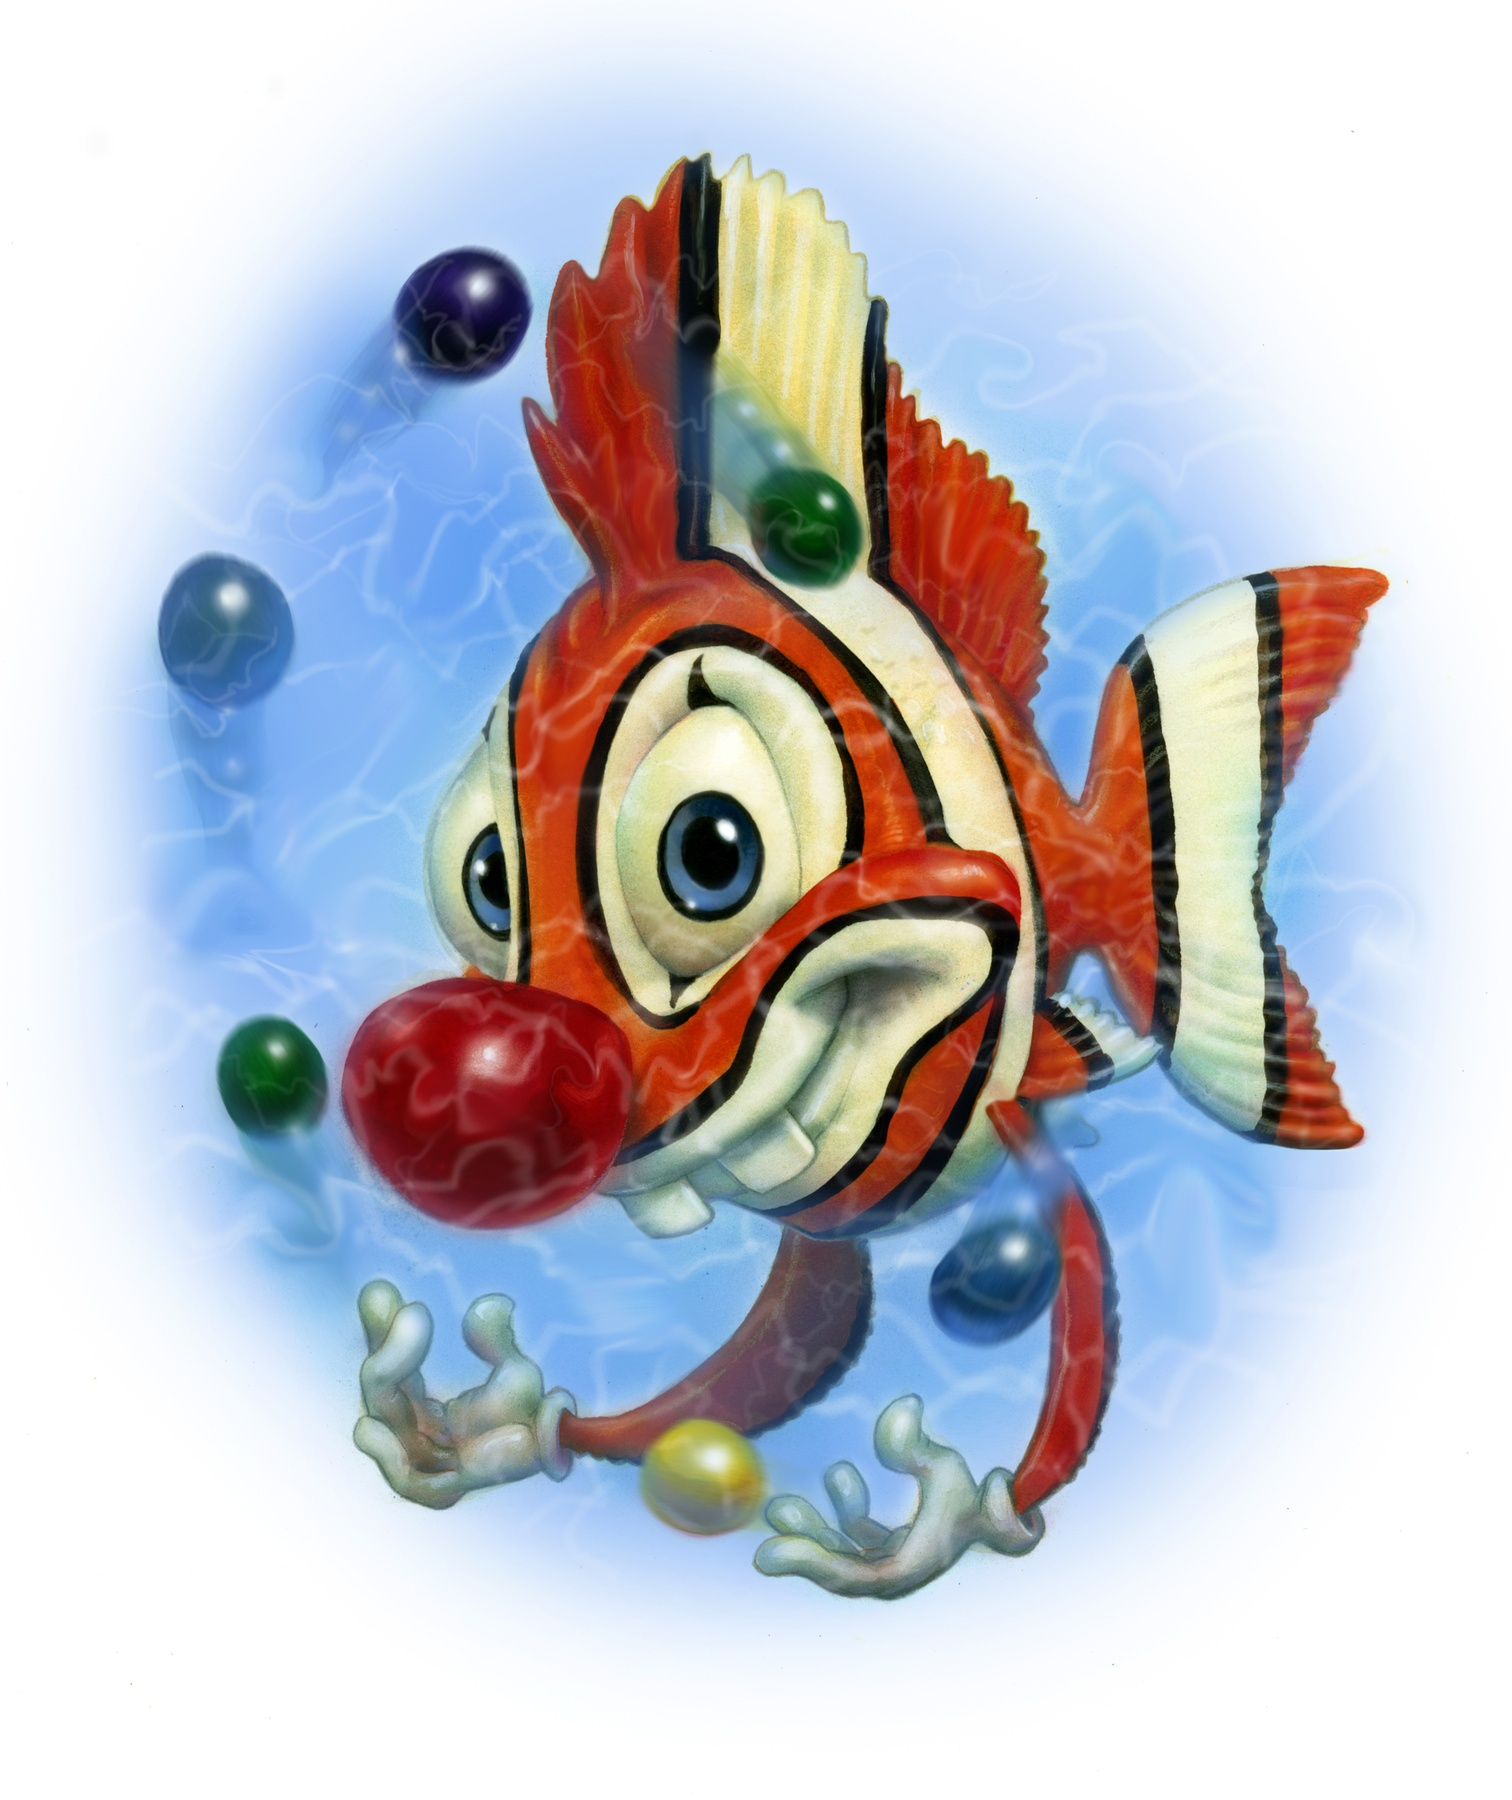 Humorous illustration of a clownfish.